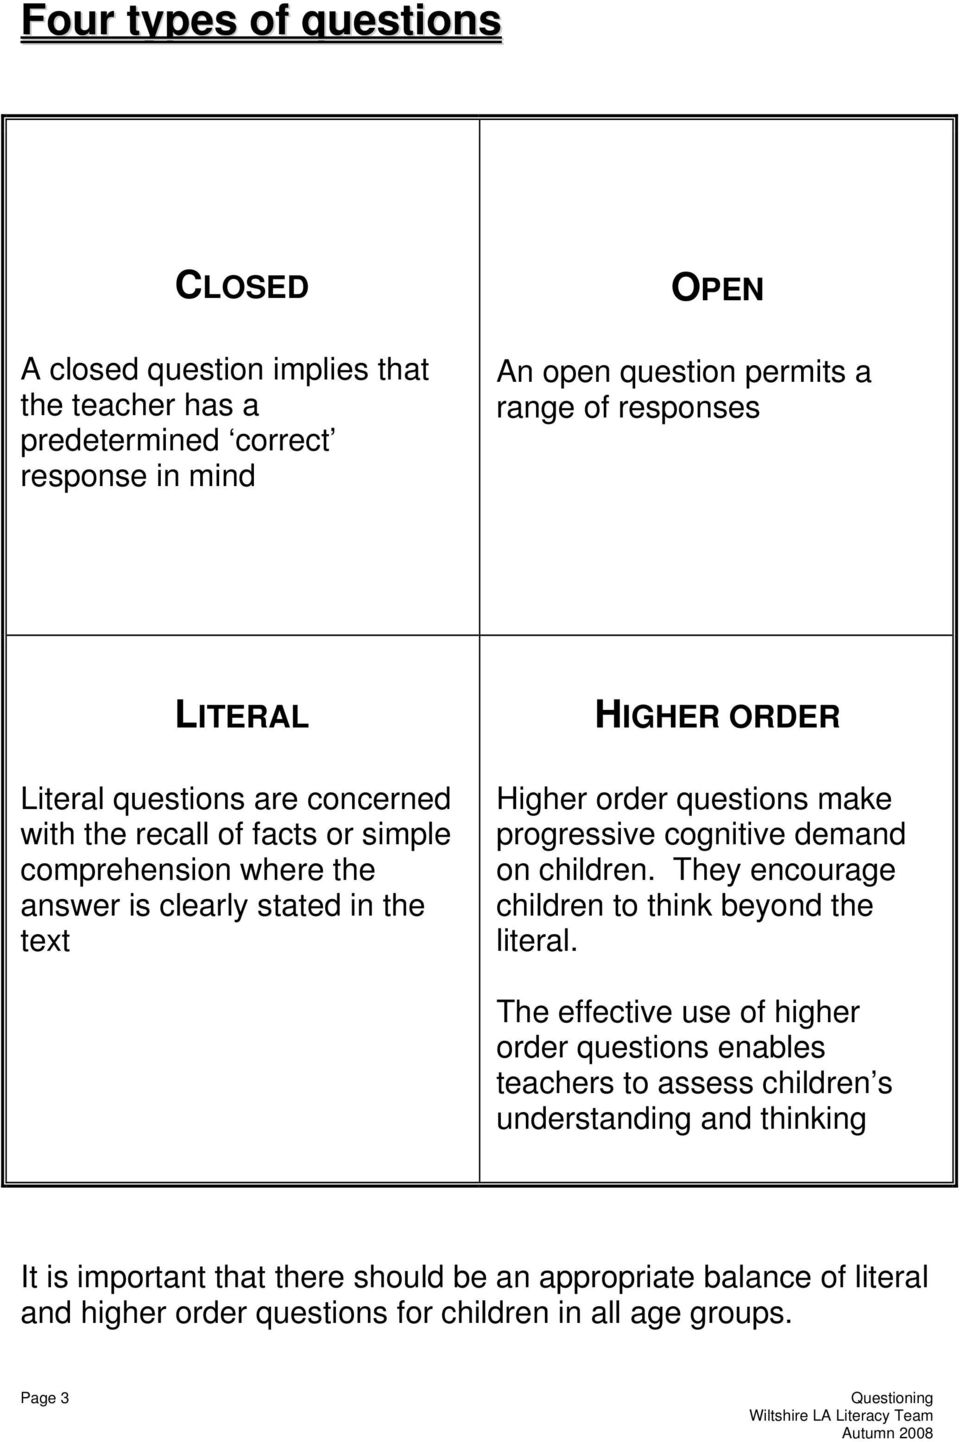 make progressive cognitive demand on children. They encourage children to think beyond the literal.